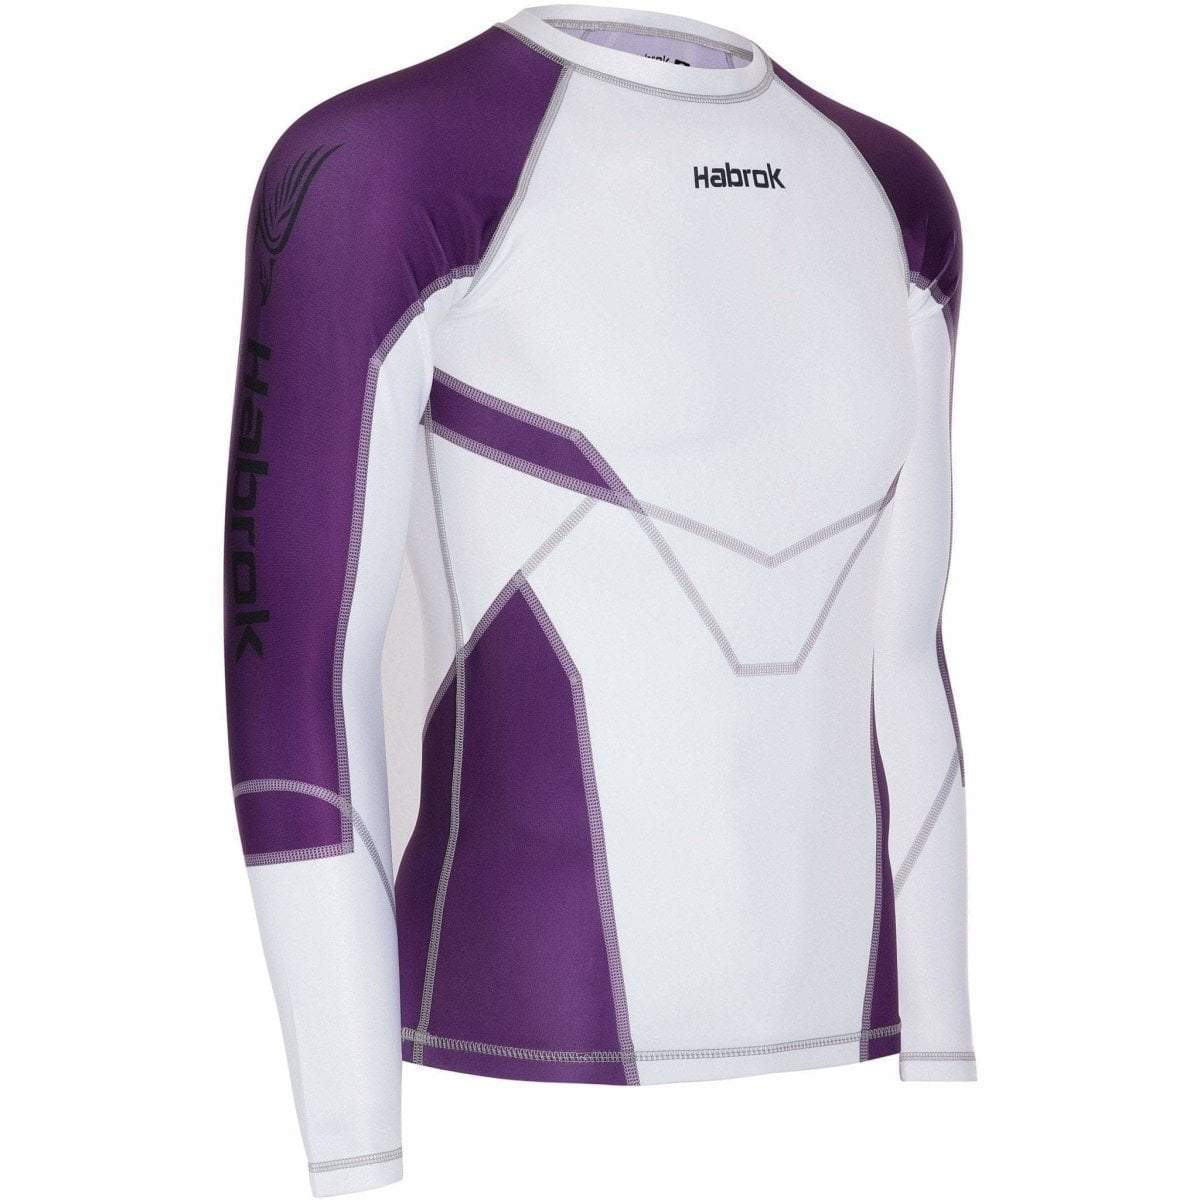 Habrok Rash Guard M / PURPLE Transform 2.5 | Rash Guard | Men